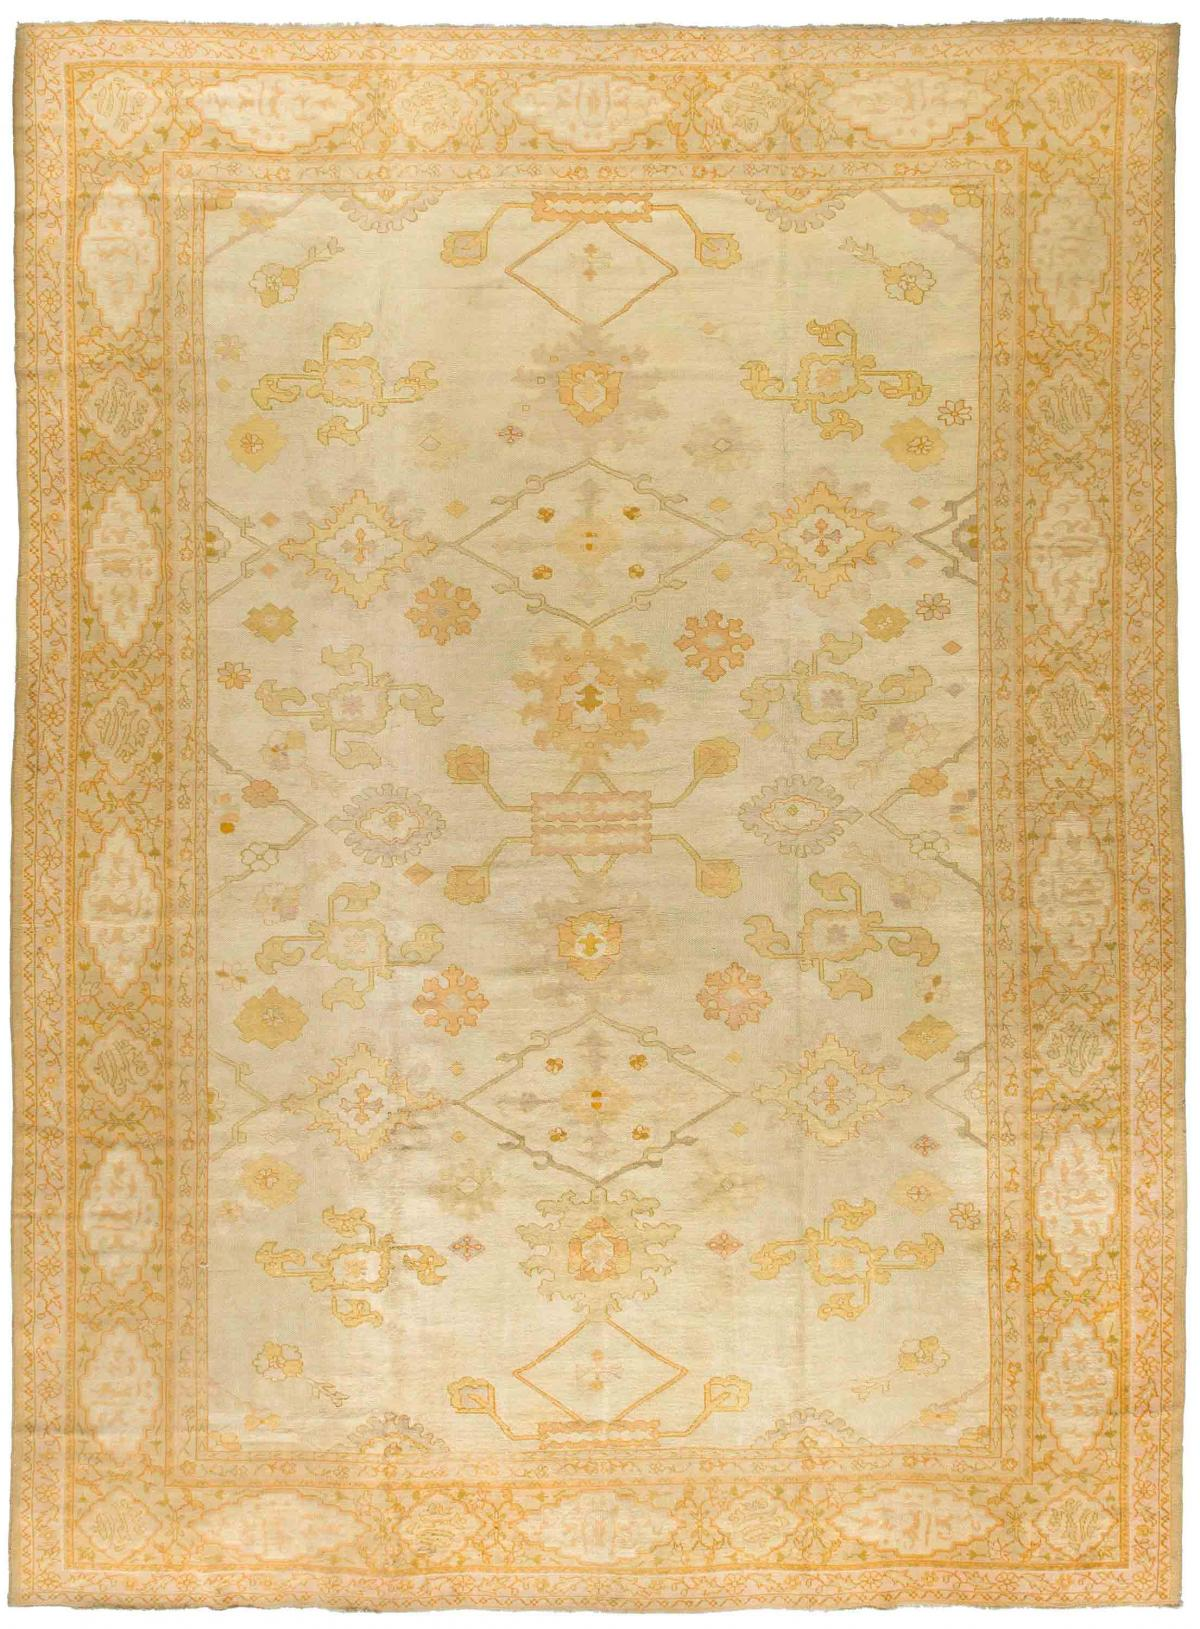 Rug Ant125427 Oushak Antique Area Rugs By Safavieh